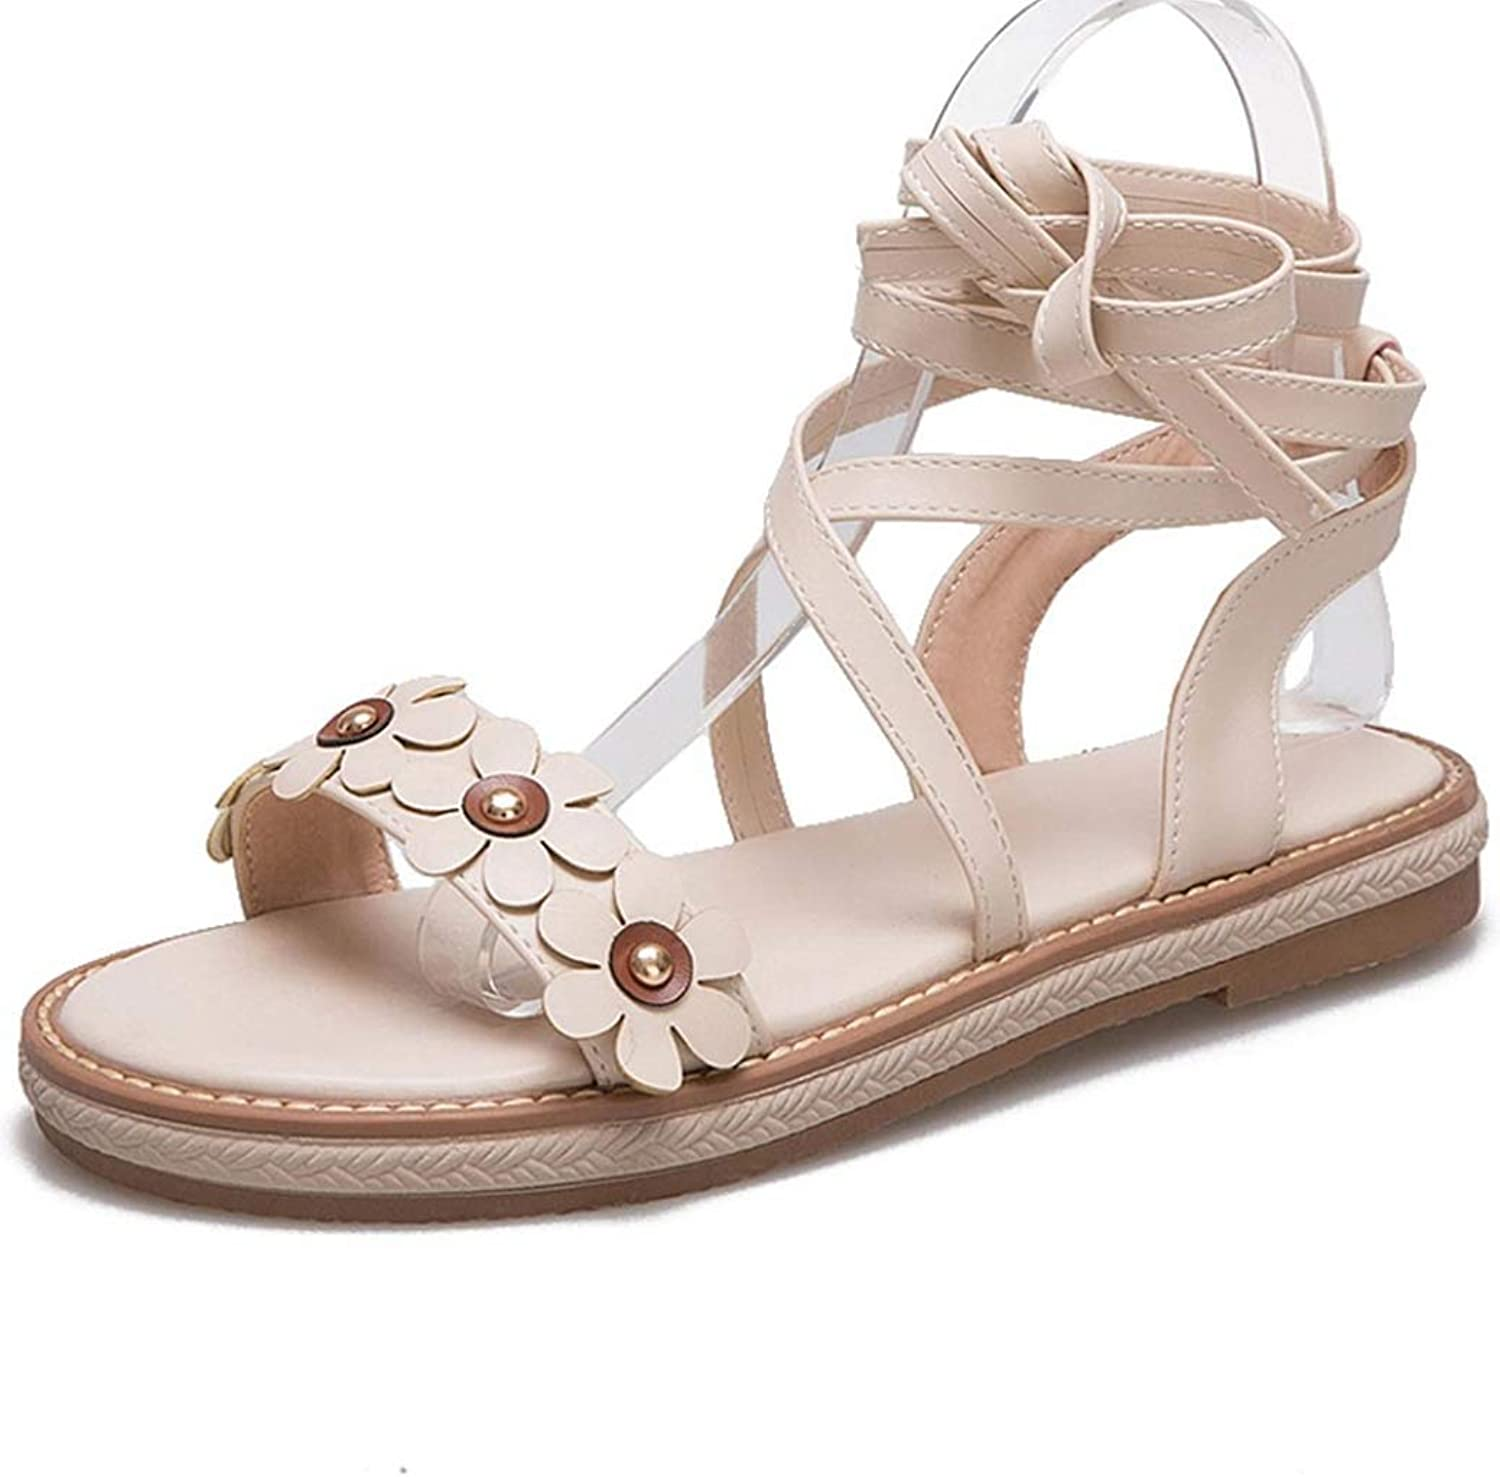 Women Platform Sandals Peep-Toe Fashion Flower Cross Ankle Strap Lace Up Ladies Dress shoes